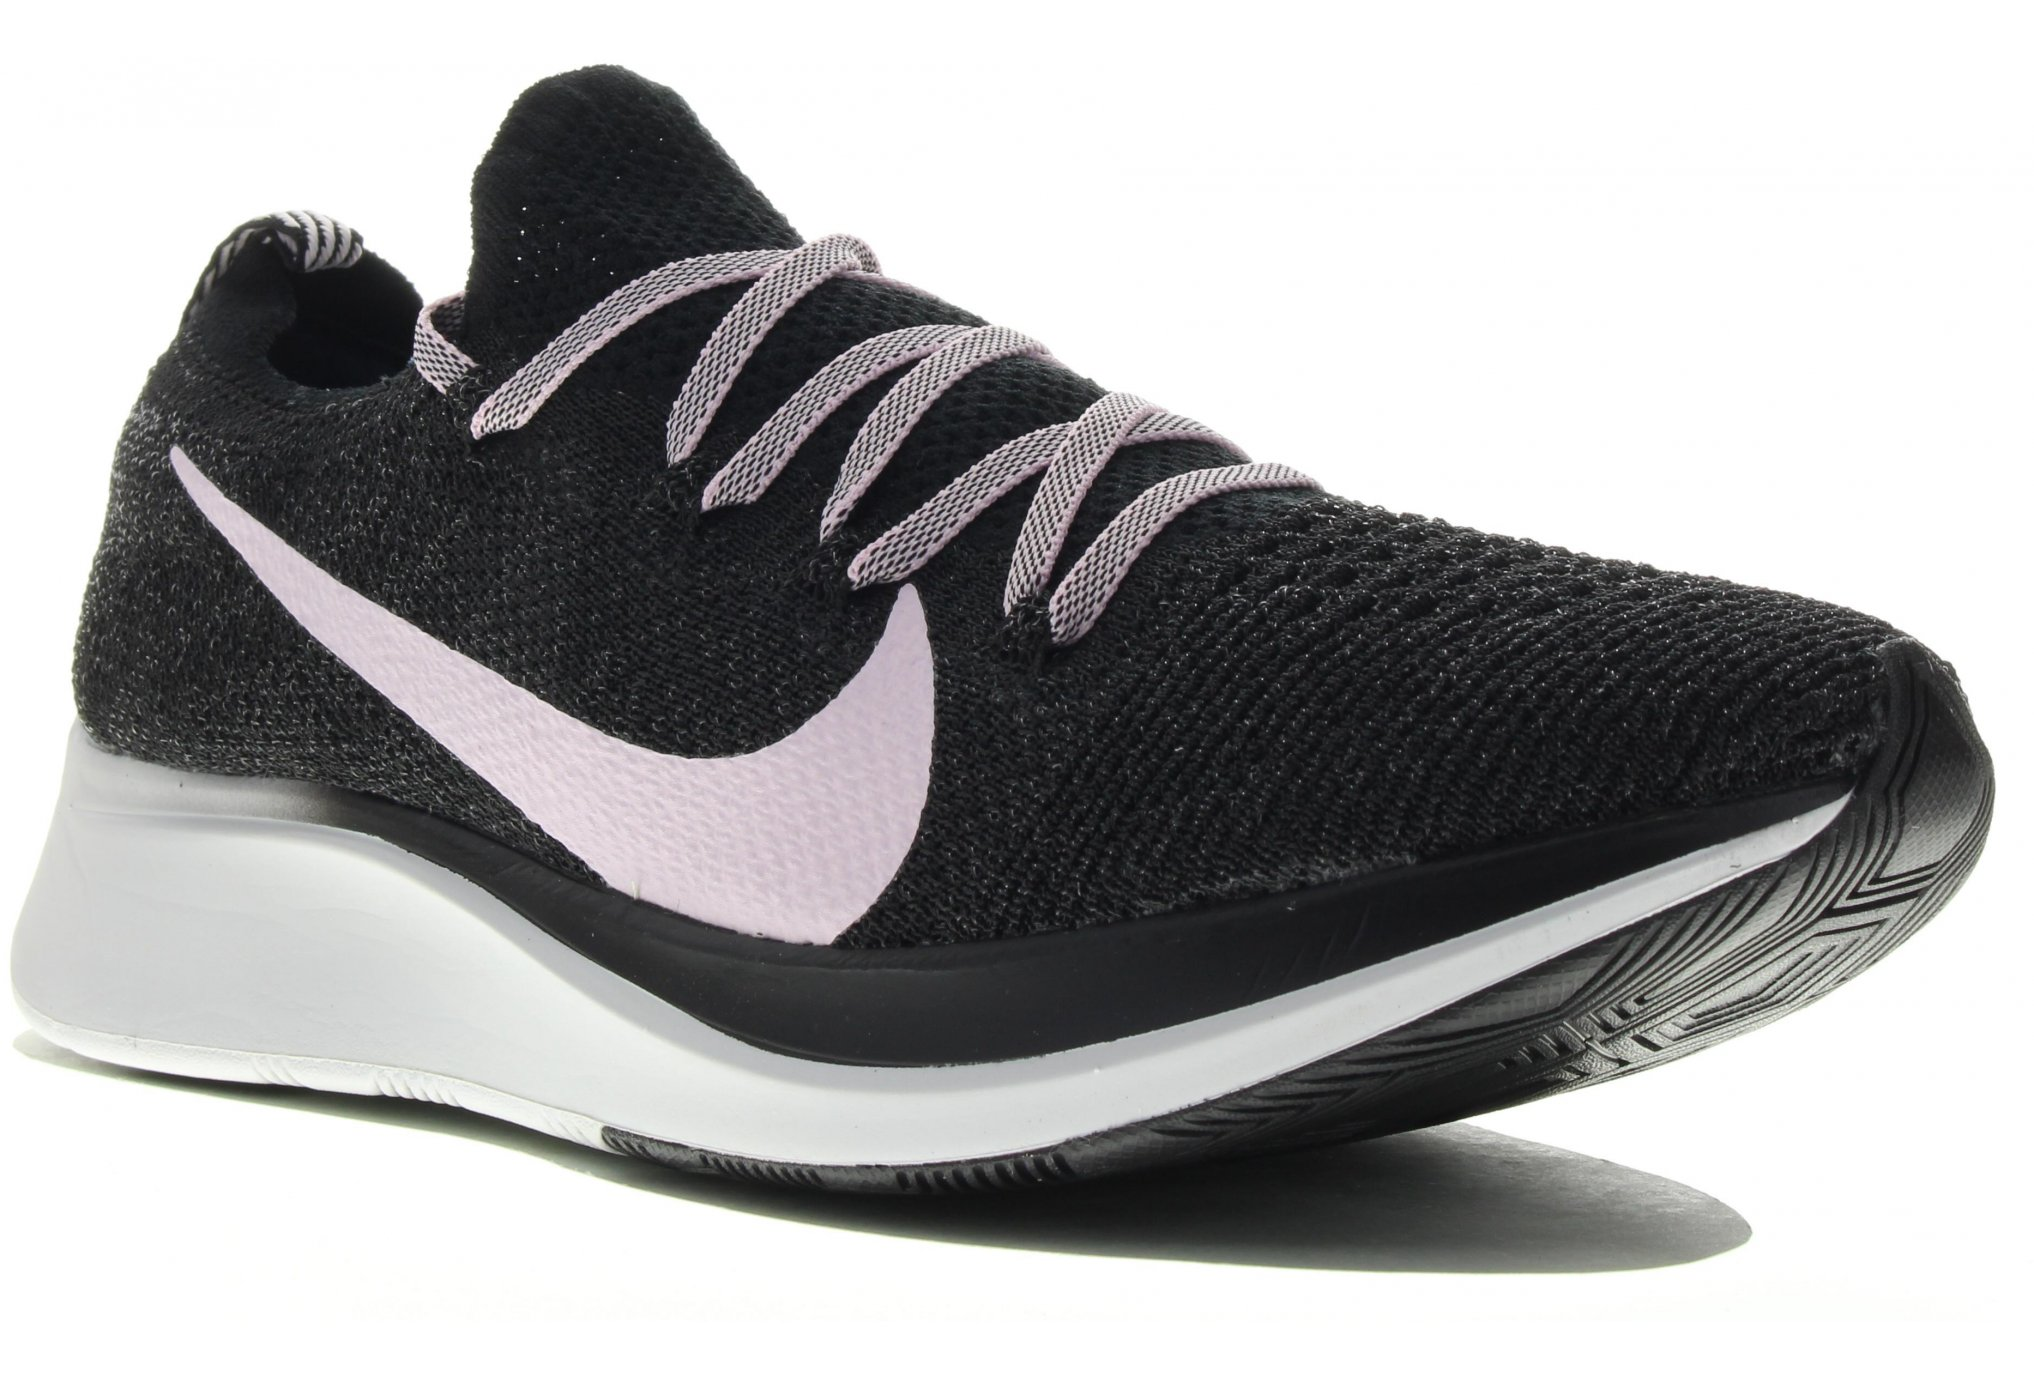 Nike Zoom Fly Flyknit W Diététique Chaussures femme